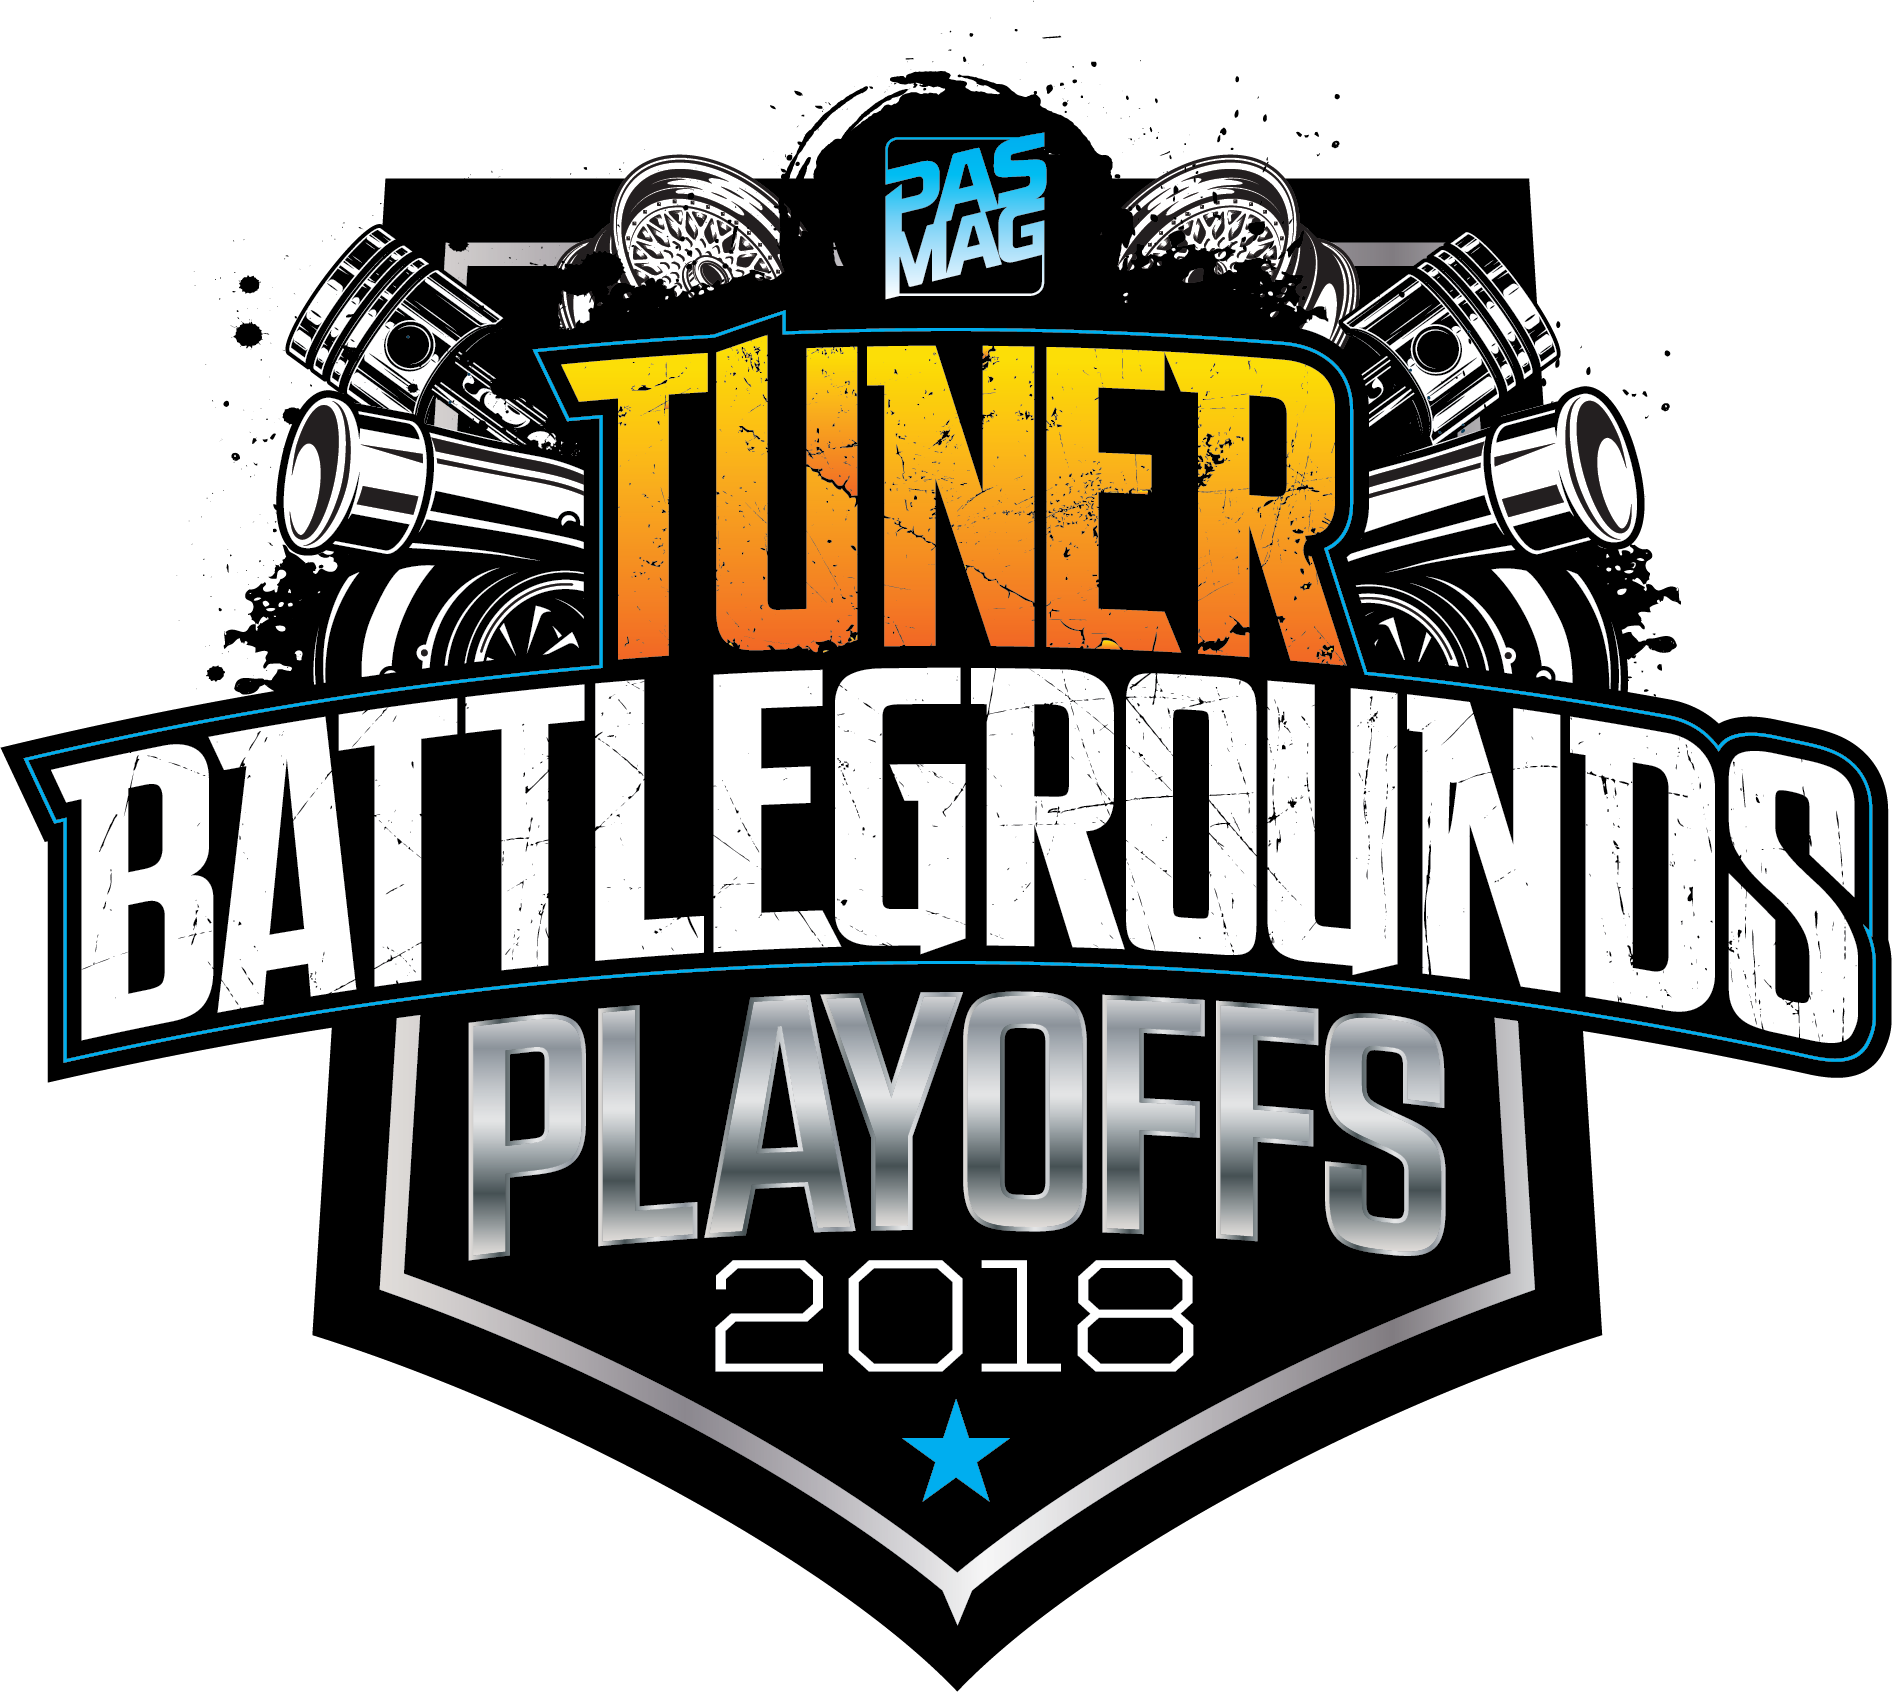 TBG Playoffs Blk 2018